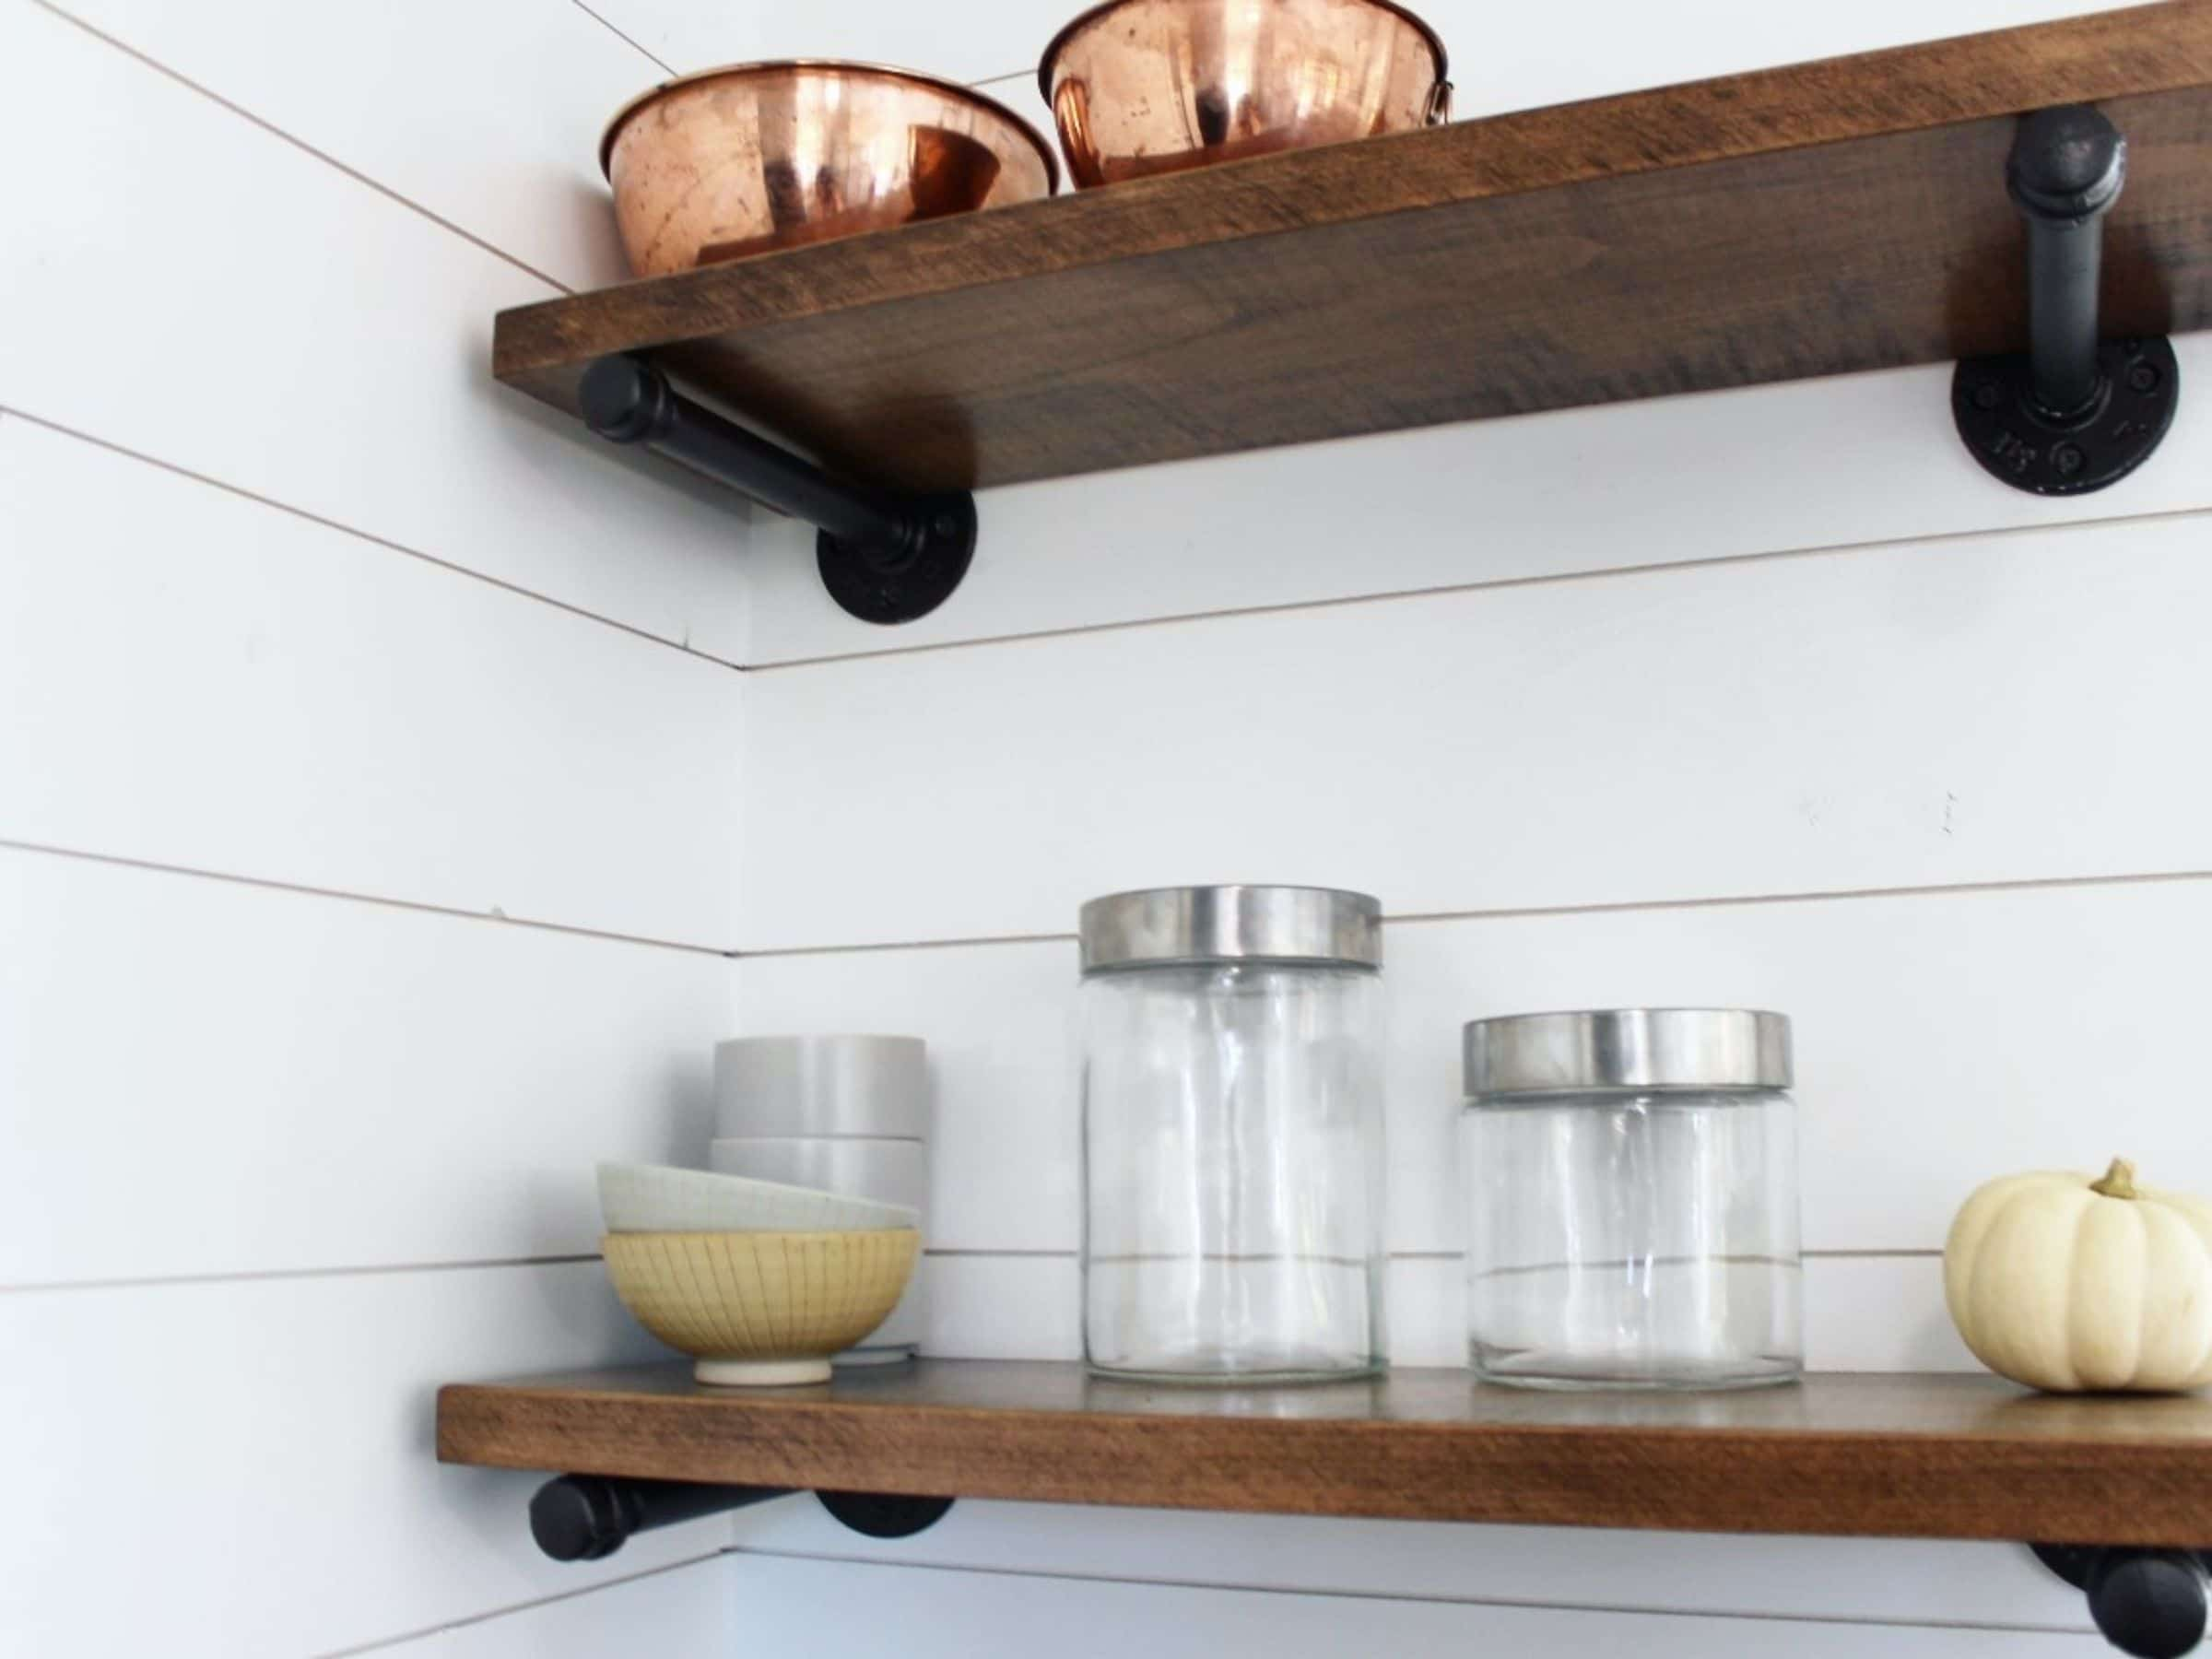 Wooden floating shelves on white shiplap wall holding copper bowls